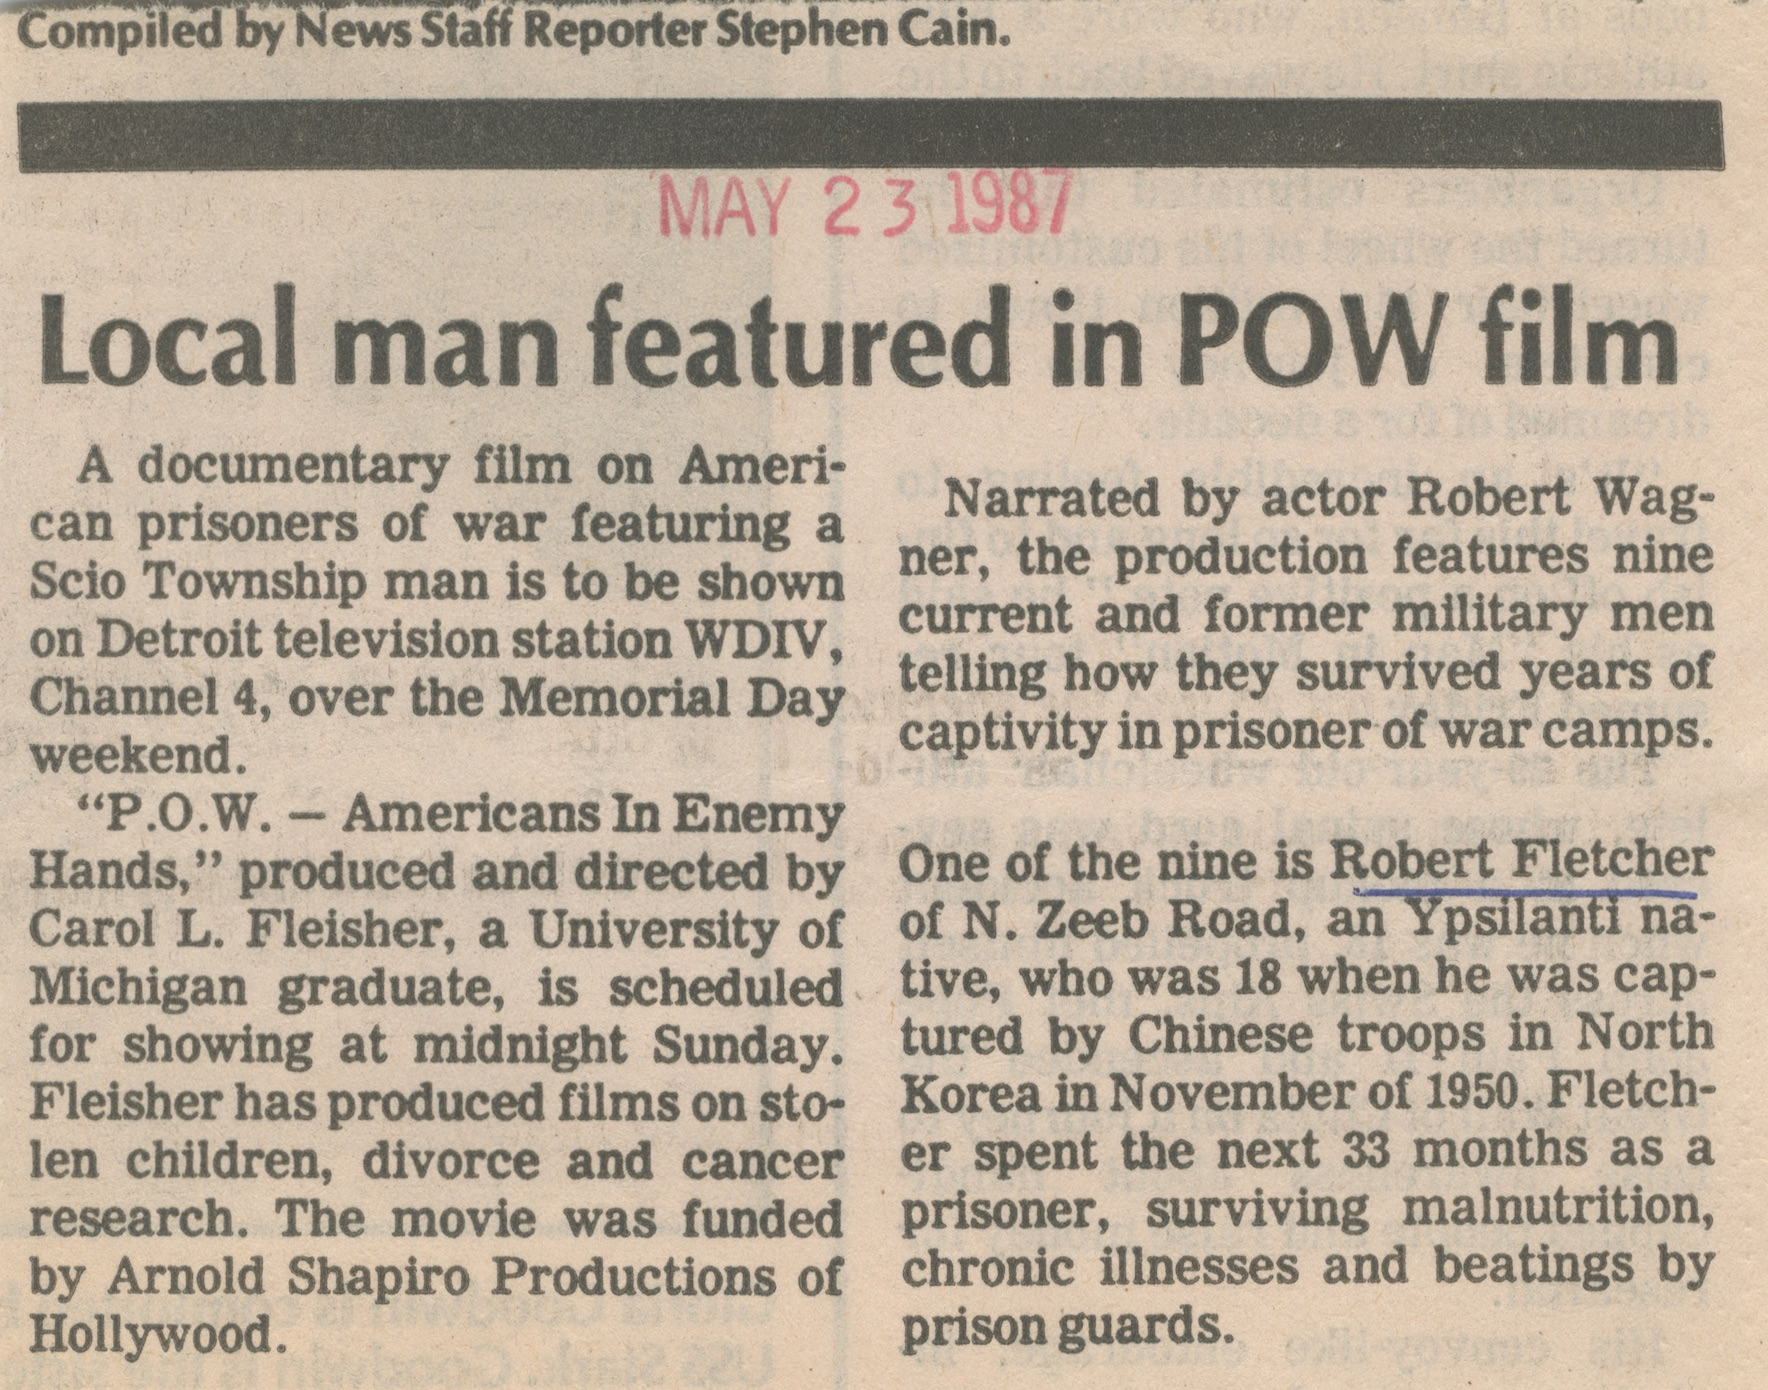 Local Man Featured in POW Film image